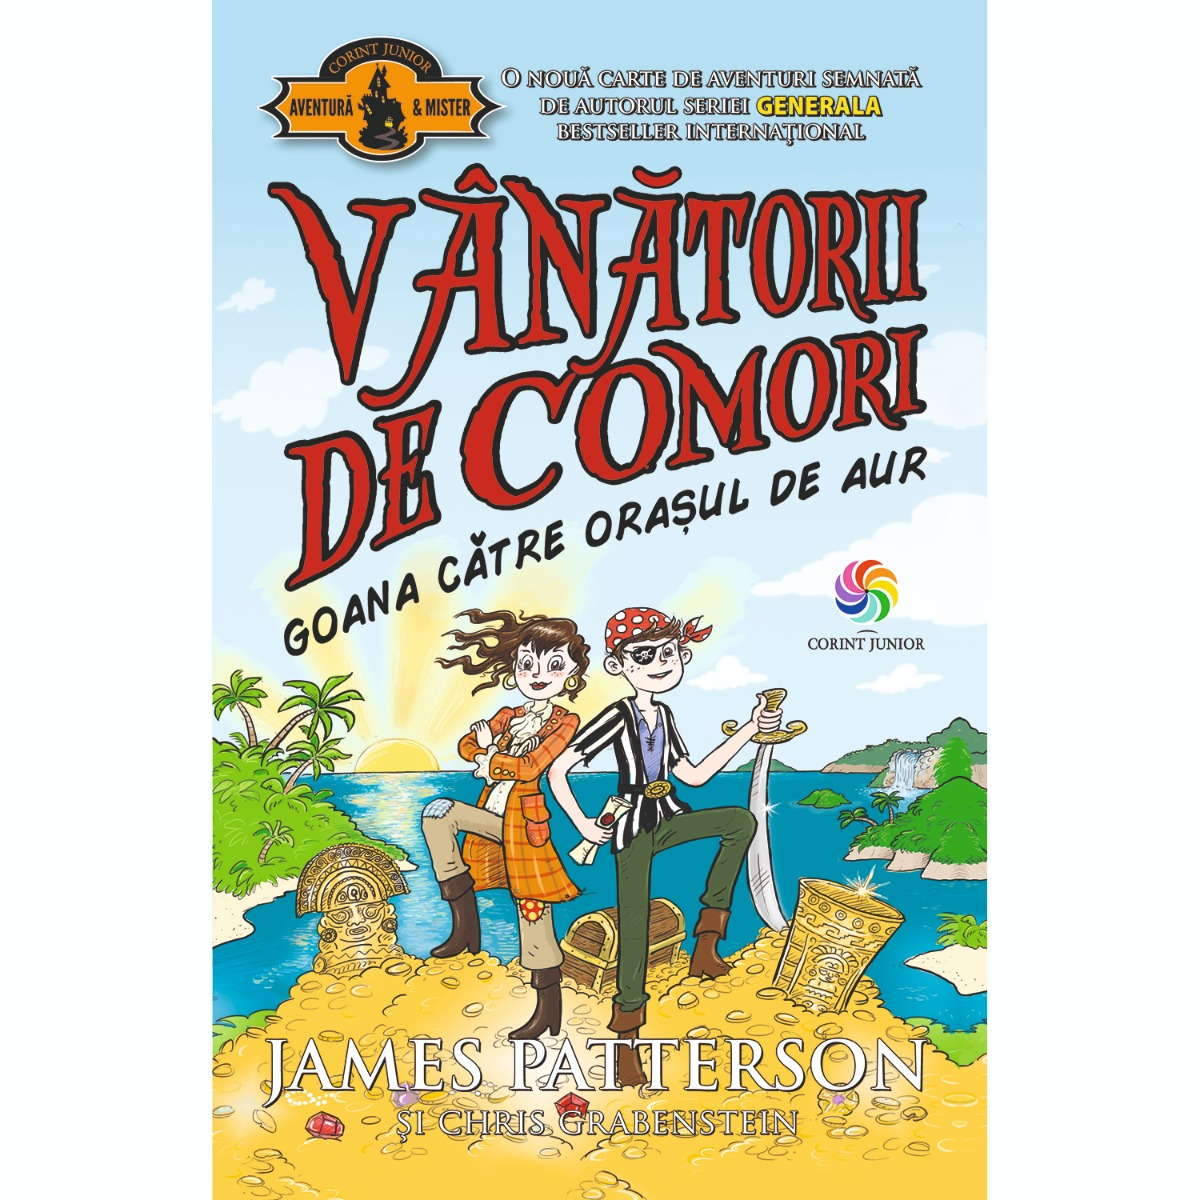 Carte Editura Corint, Vanatorii de comori vol. 5 Goana catre orasul de aur, James Patterson, Chris Grabenstein